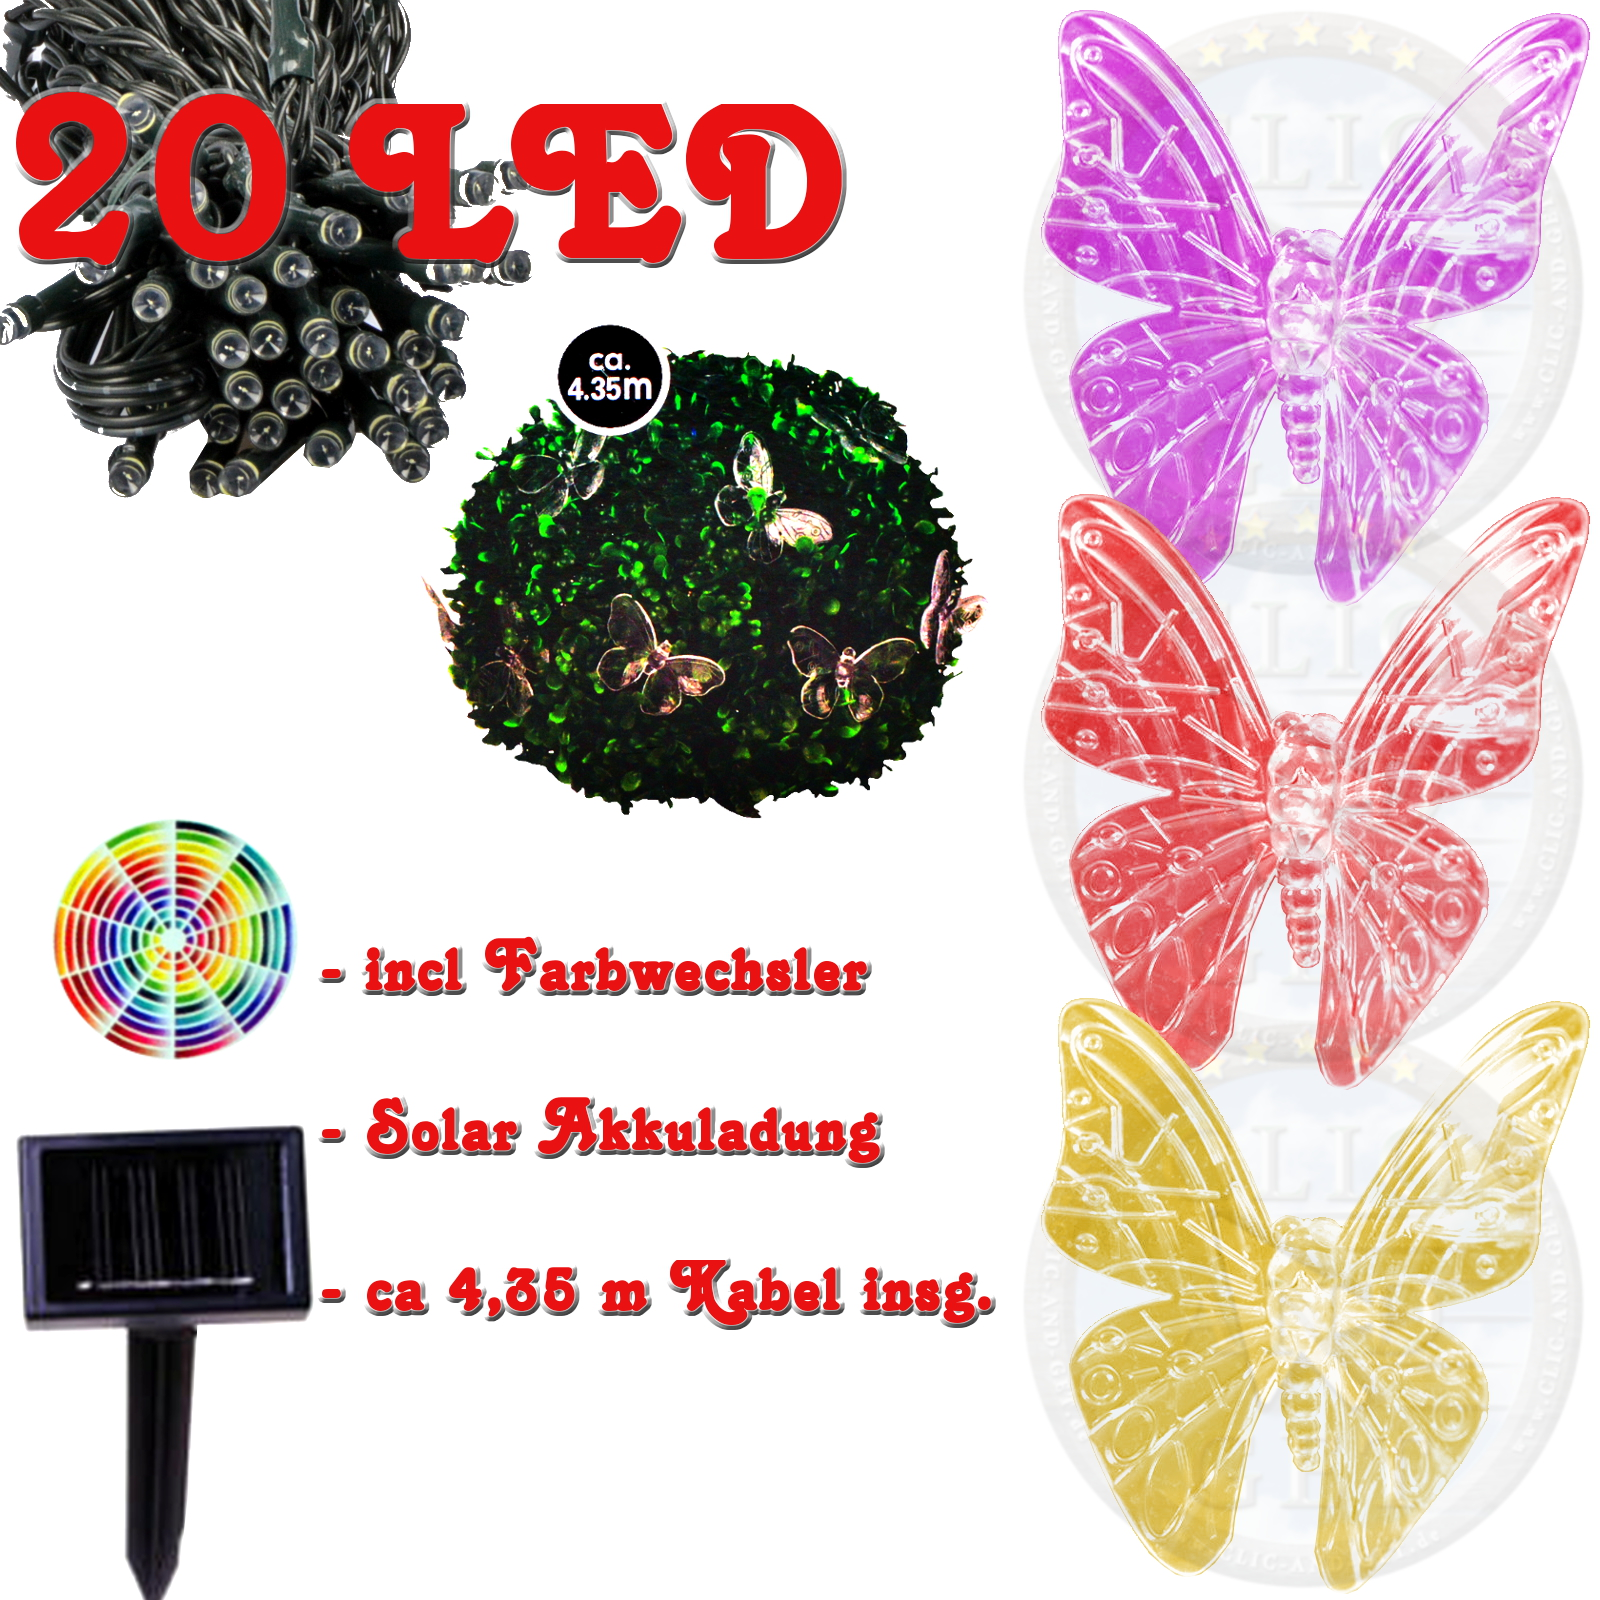 20 solaire led guirlande lumineuse papillon ext rieur - Guirlandes lumineuses solaires exterieures ...